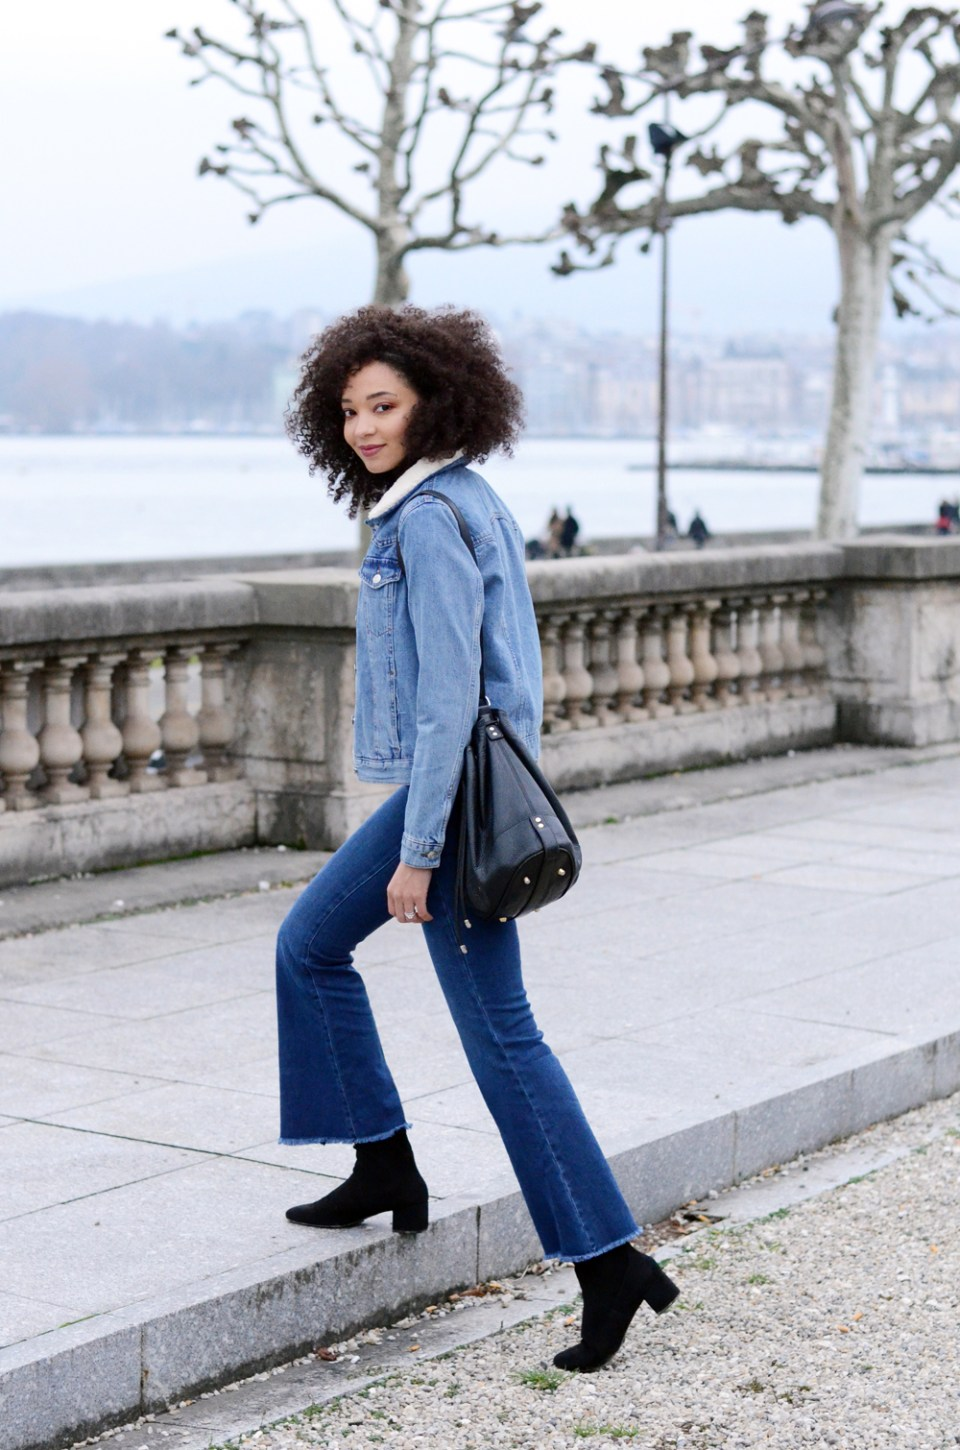 mercredie-blog-mode-geneve-suisse-blogueuse-bloggeuse-jean-flare-selected-sfena-aldo-stefi-boots-topshop-denim-jean-jacket-levis-turtle-neck-black4